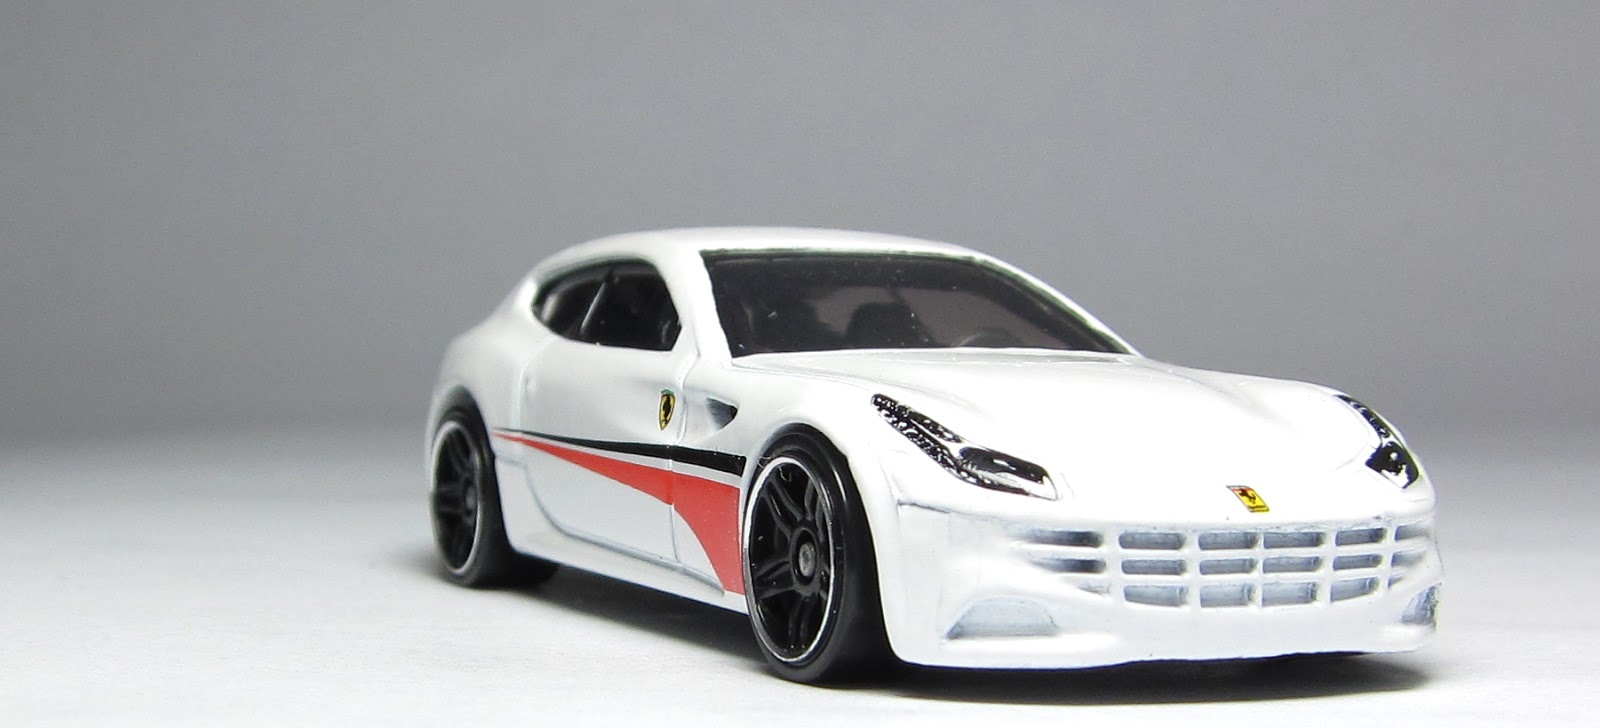 best motorcycle 2014 first look at the hot wheels ferrari 5 pack part 2 fe. Black Bedroom Furniture Sets. Home Design Ideas